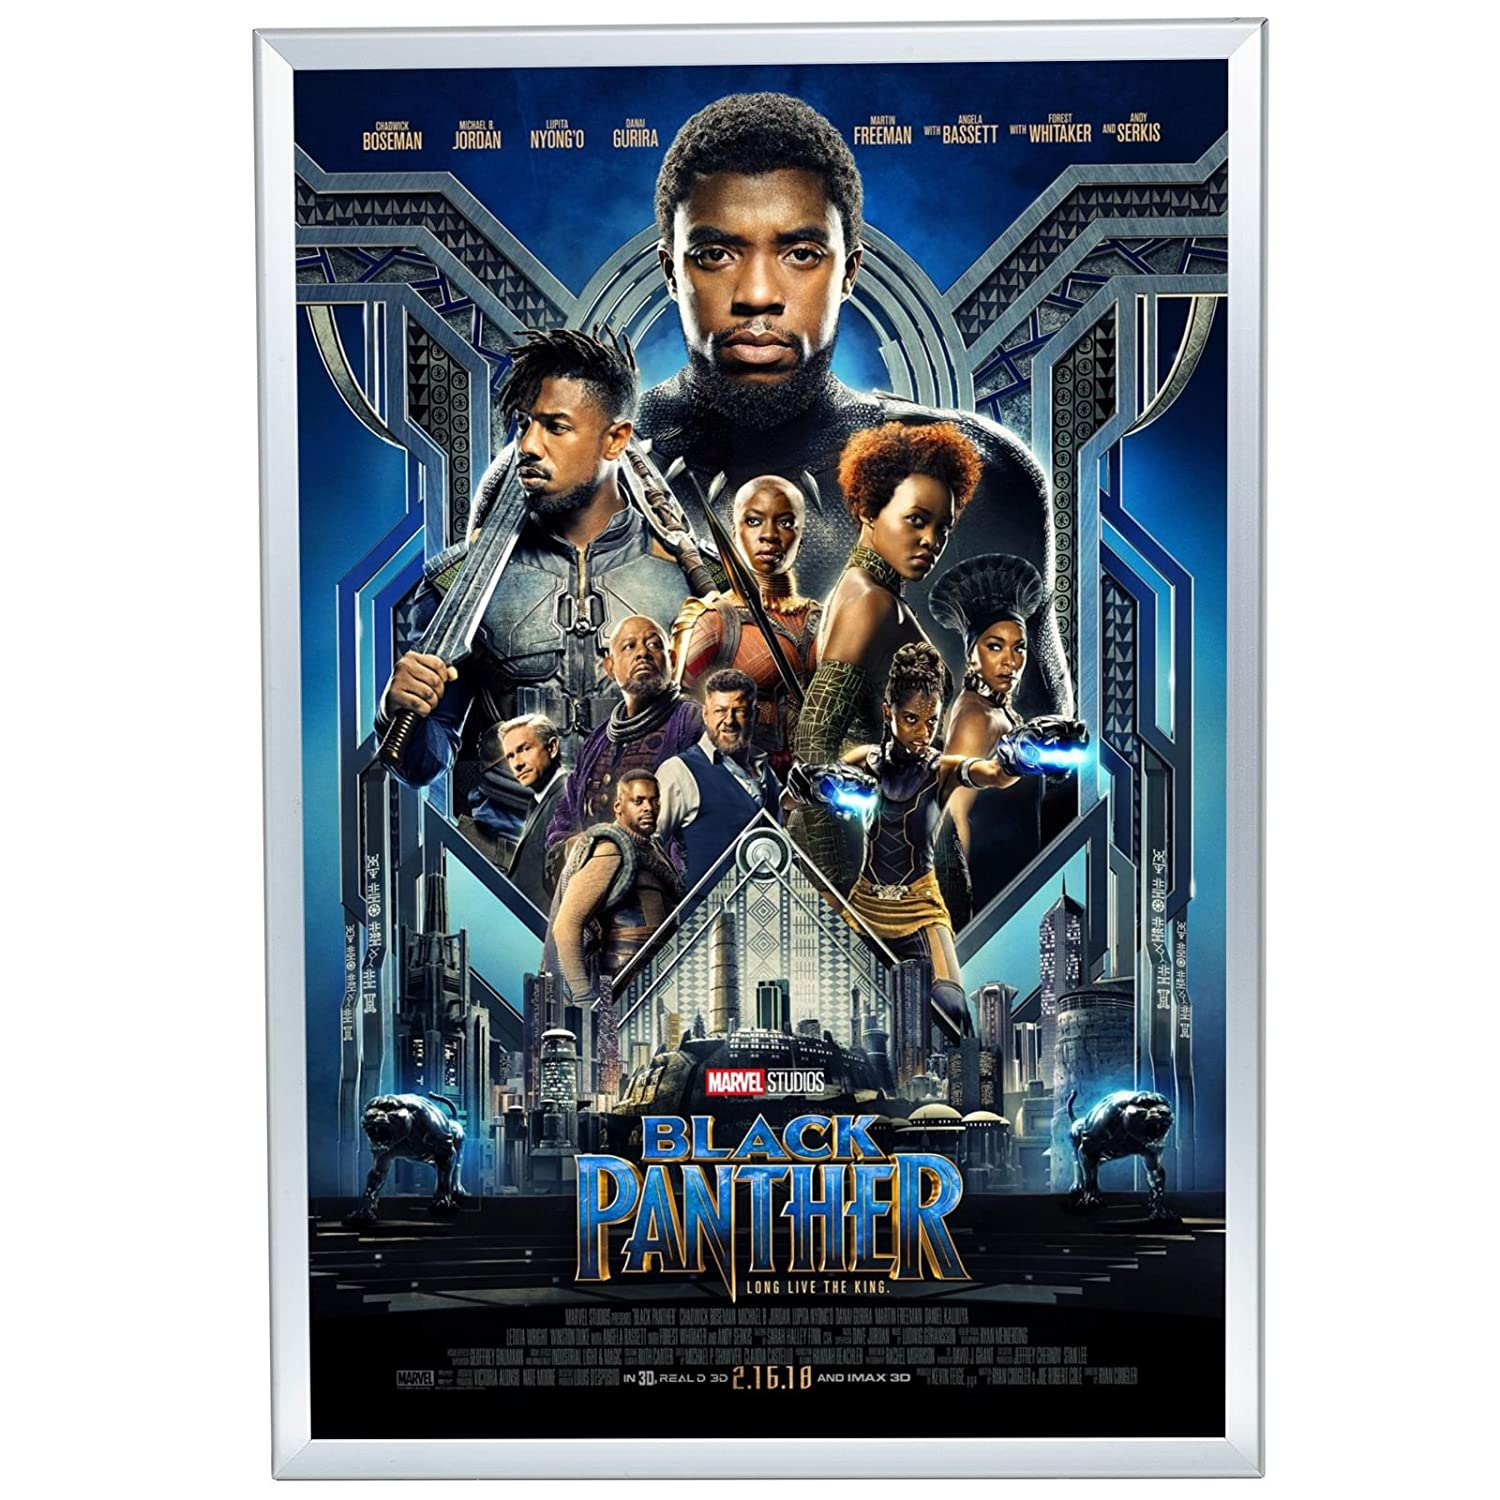 SnapeZo Movie Poster Frame 27x40 Inches, Cream 1.25 Aluminum Profile, Front-Loading Snap Frame, Wall Mounting, Professional Series for One Sheet Movie Posters SNAP-27-40-CM-32MM